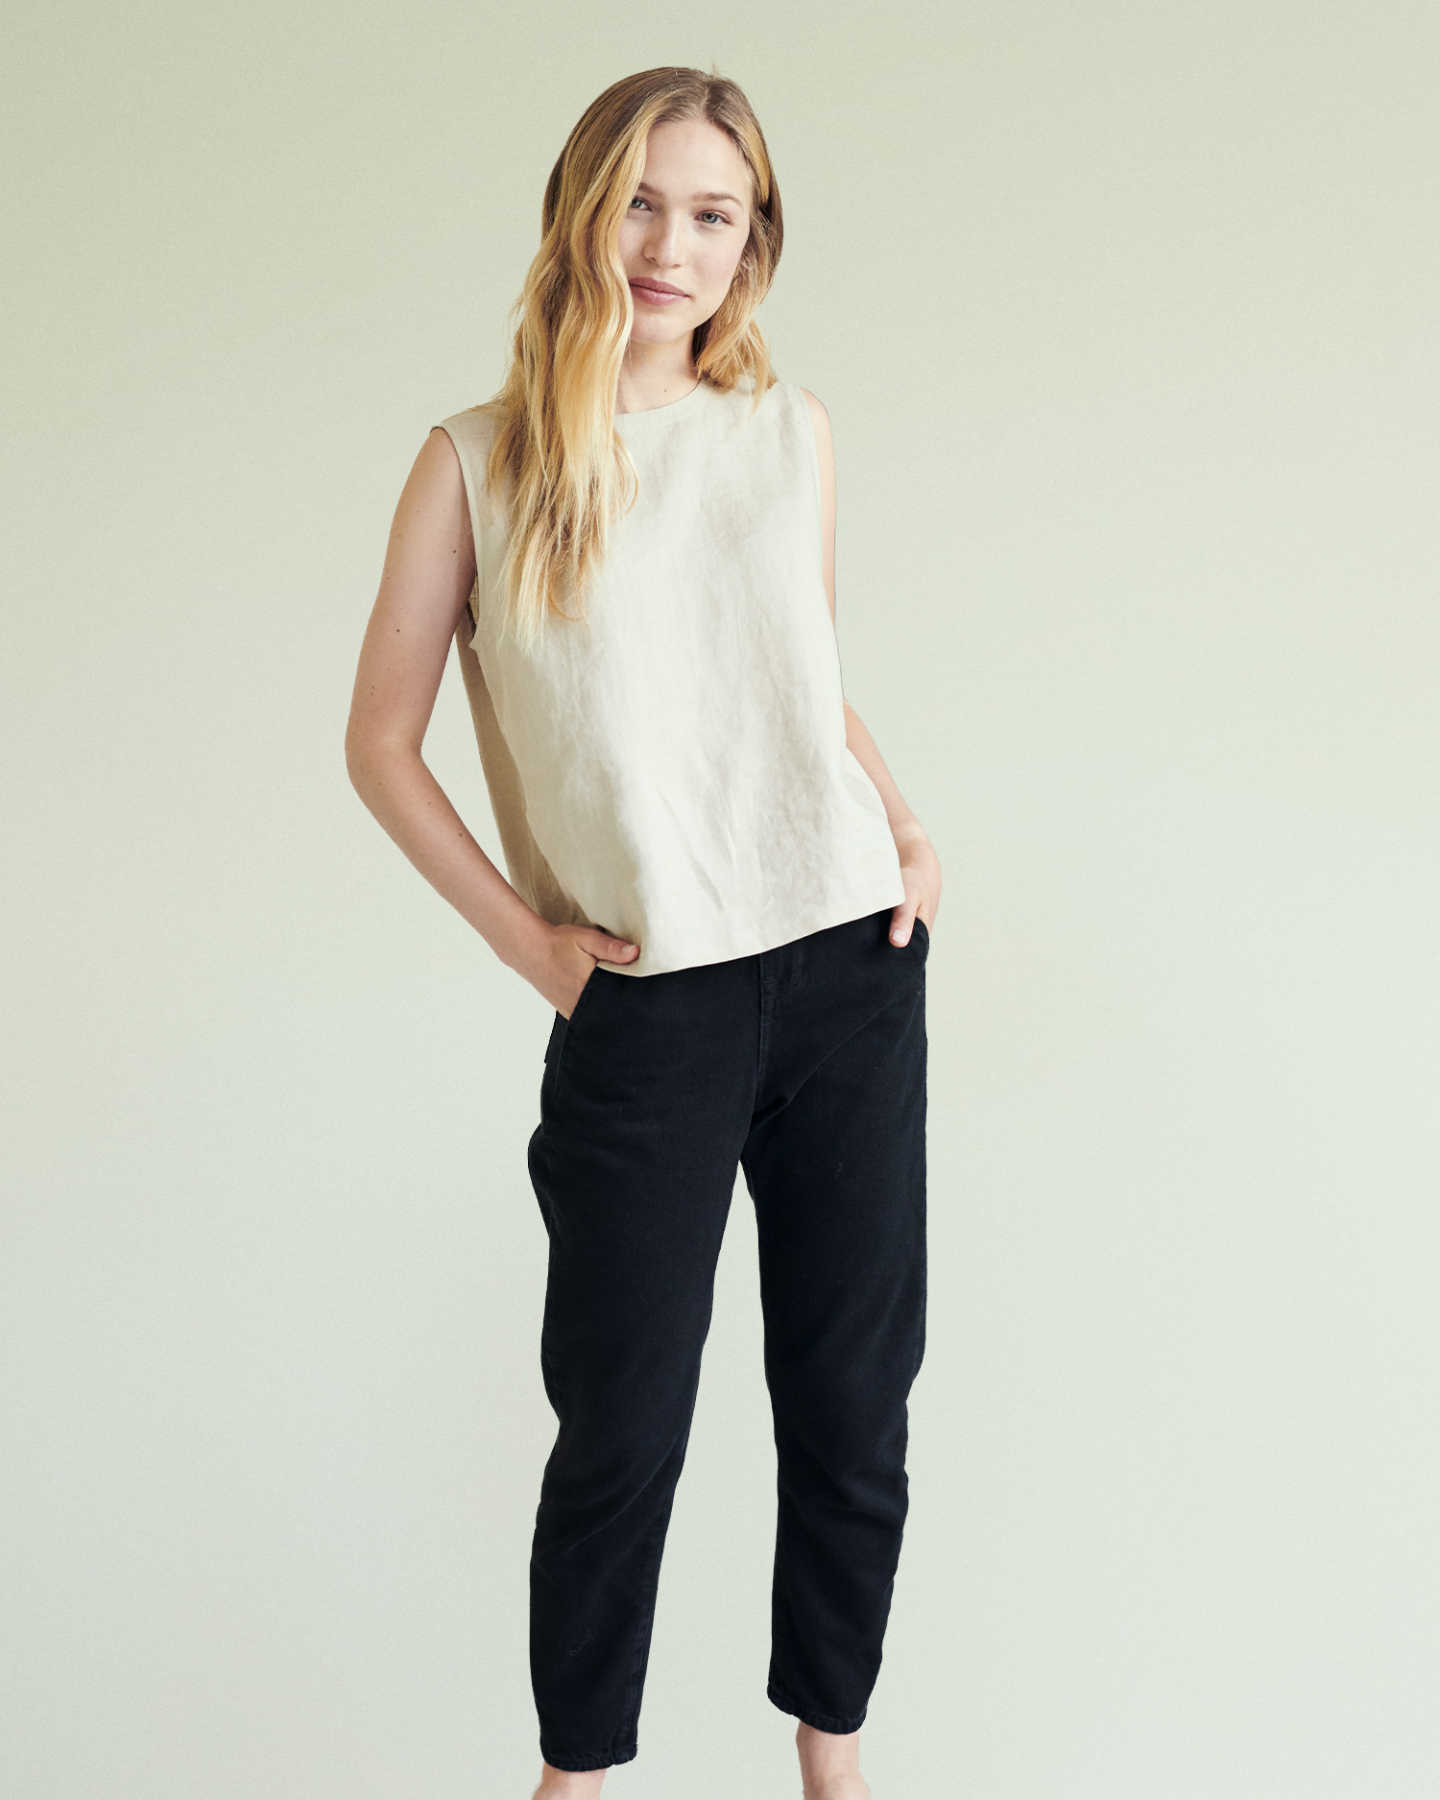 linen tank top & linen pants for women driftwood black 1